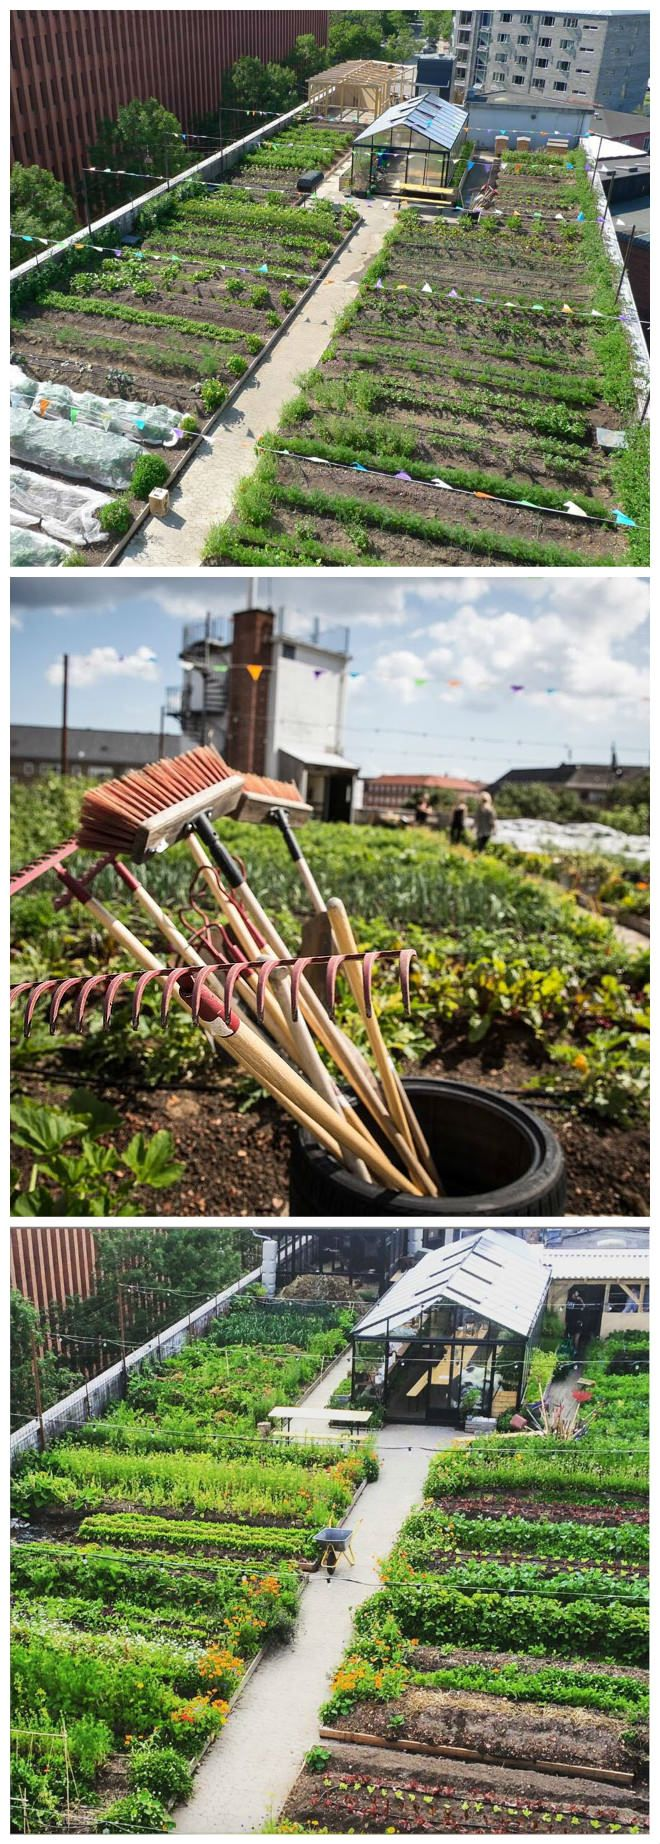 Oestergro, A Urban Farm Landscape Made In Denmark - Landscapes - A 600 m2 organic rooftop garden, five floors above an old car auction –it sounds like a scene from New York, but it is totally Copenhagen. Here in Østerbro, the ØsterGro project, comprising 90 tonnes of soil spread over neat raised beds, is just one example of how urban gardens are turning...